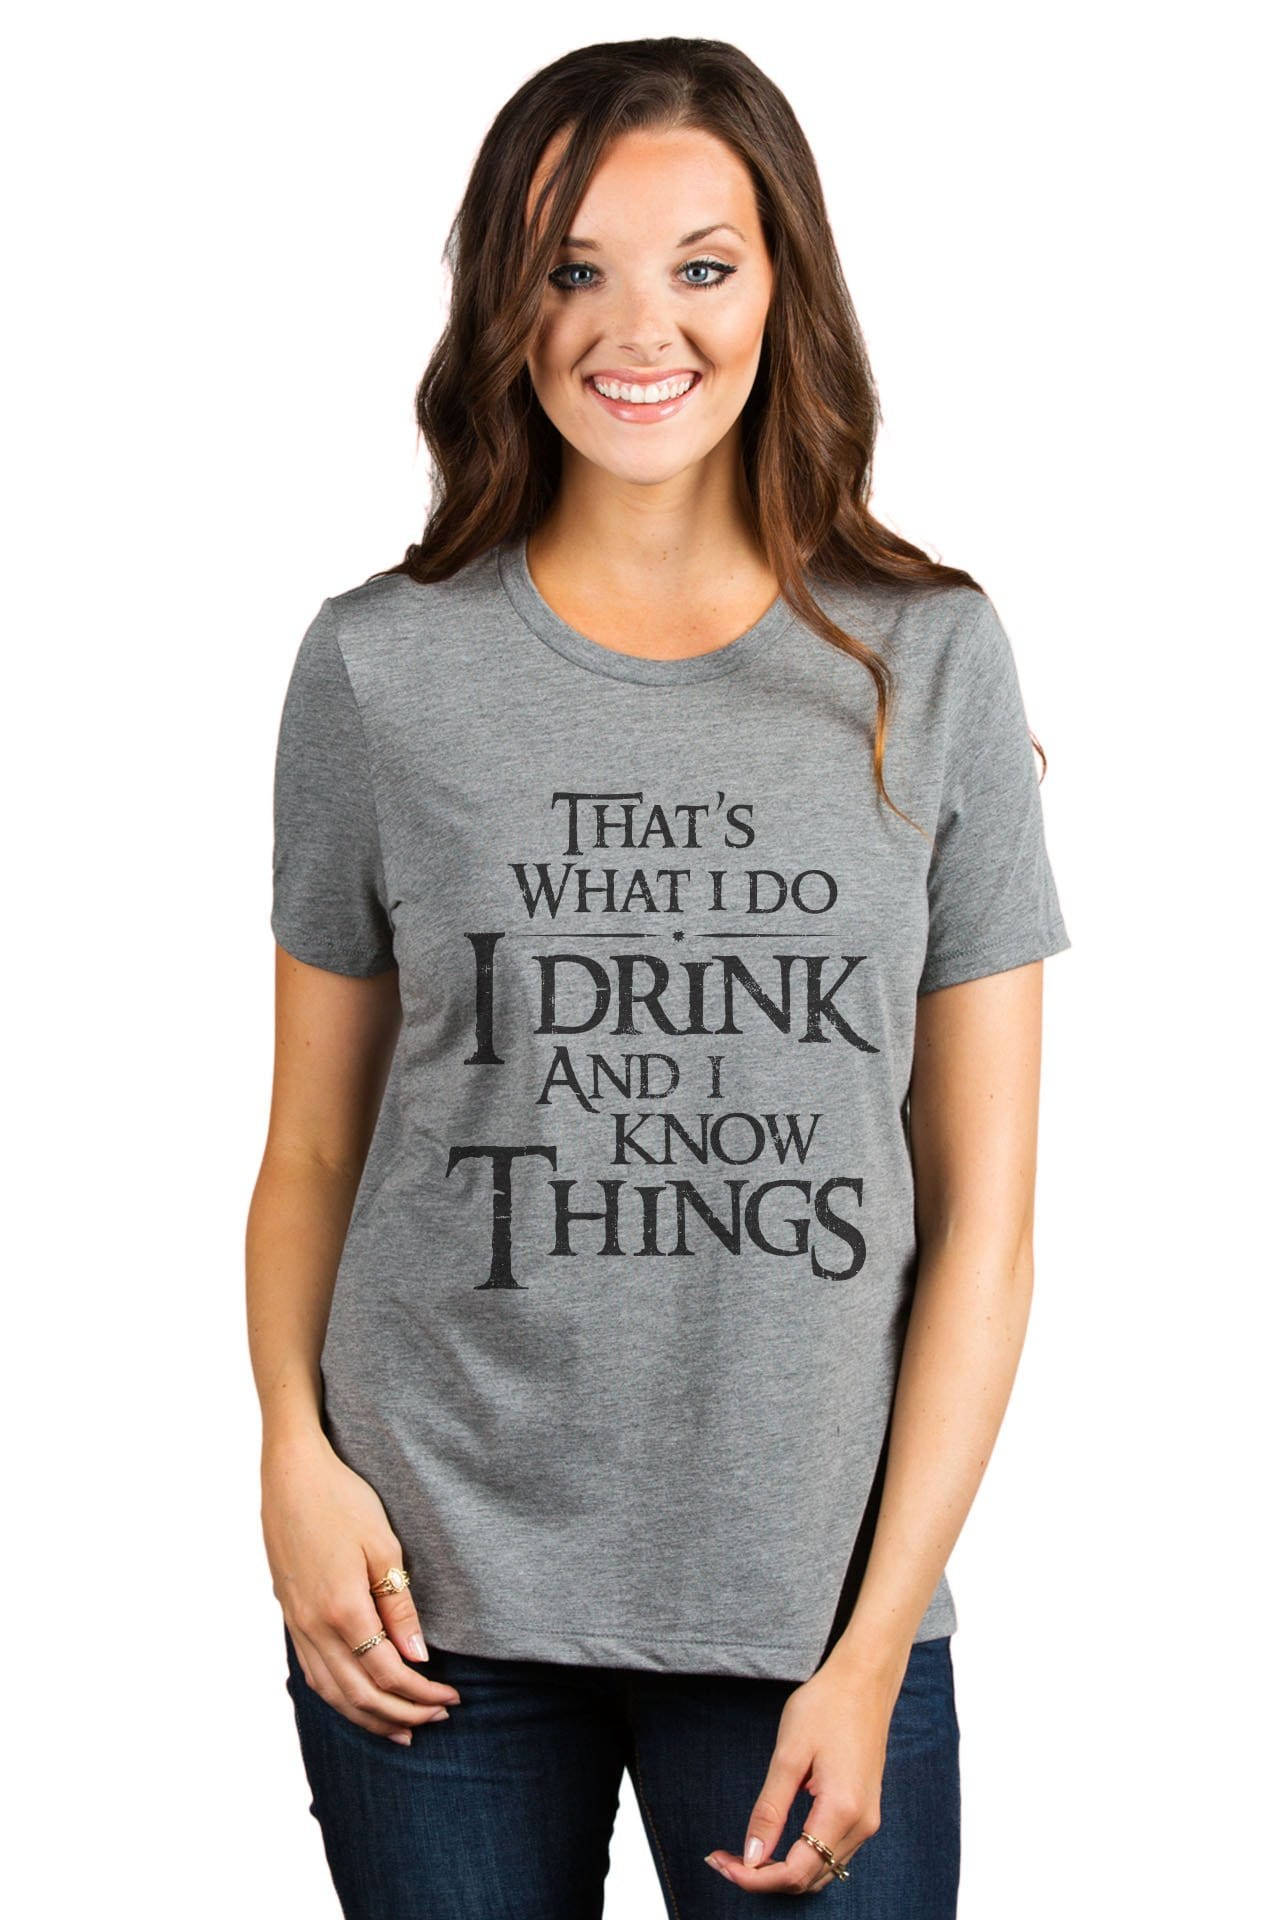 Thats What I Do I Drink And I Know Things Women's Relaxed Crewneck T-Shirt Top Tee Heather Grey